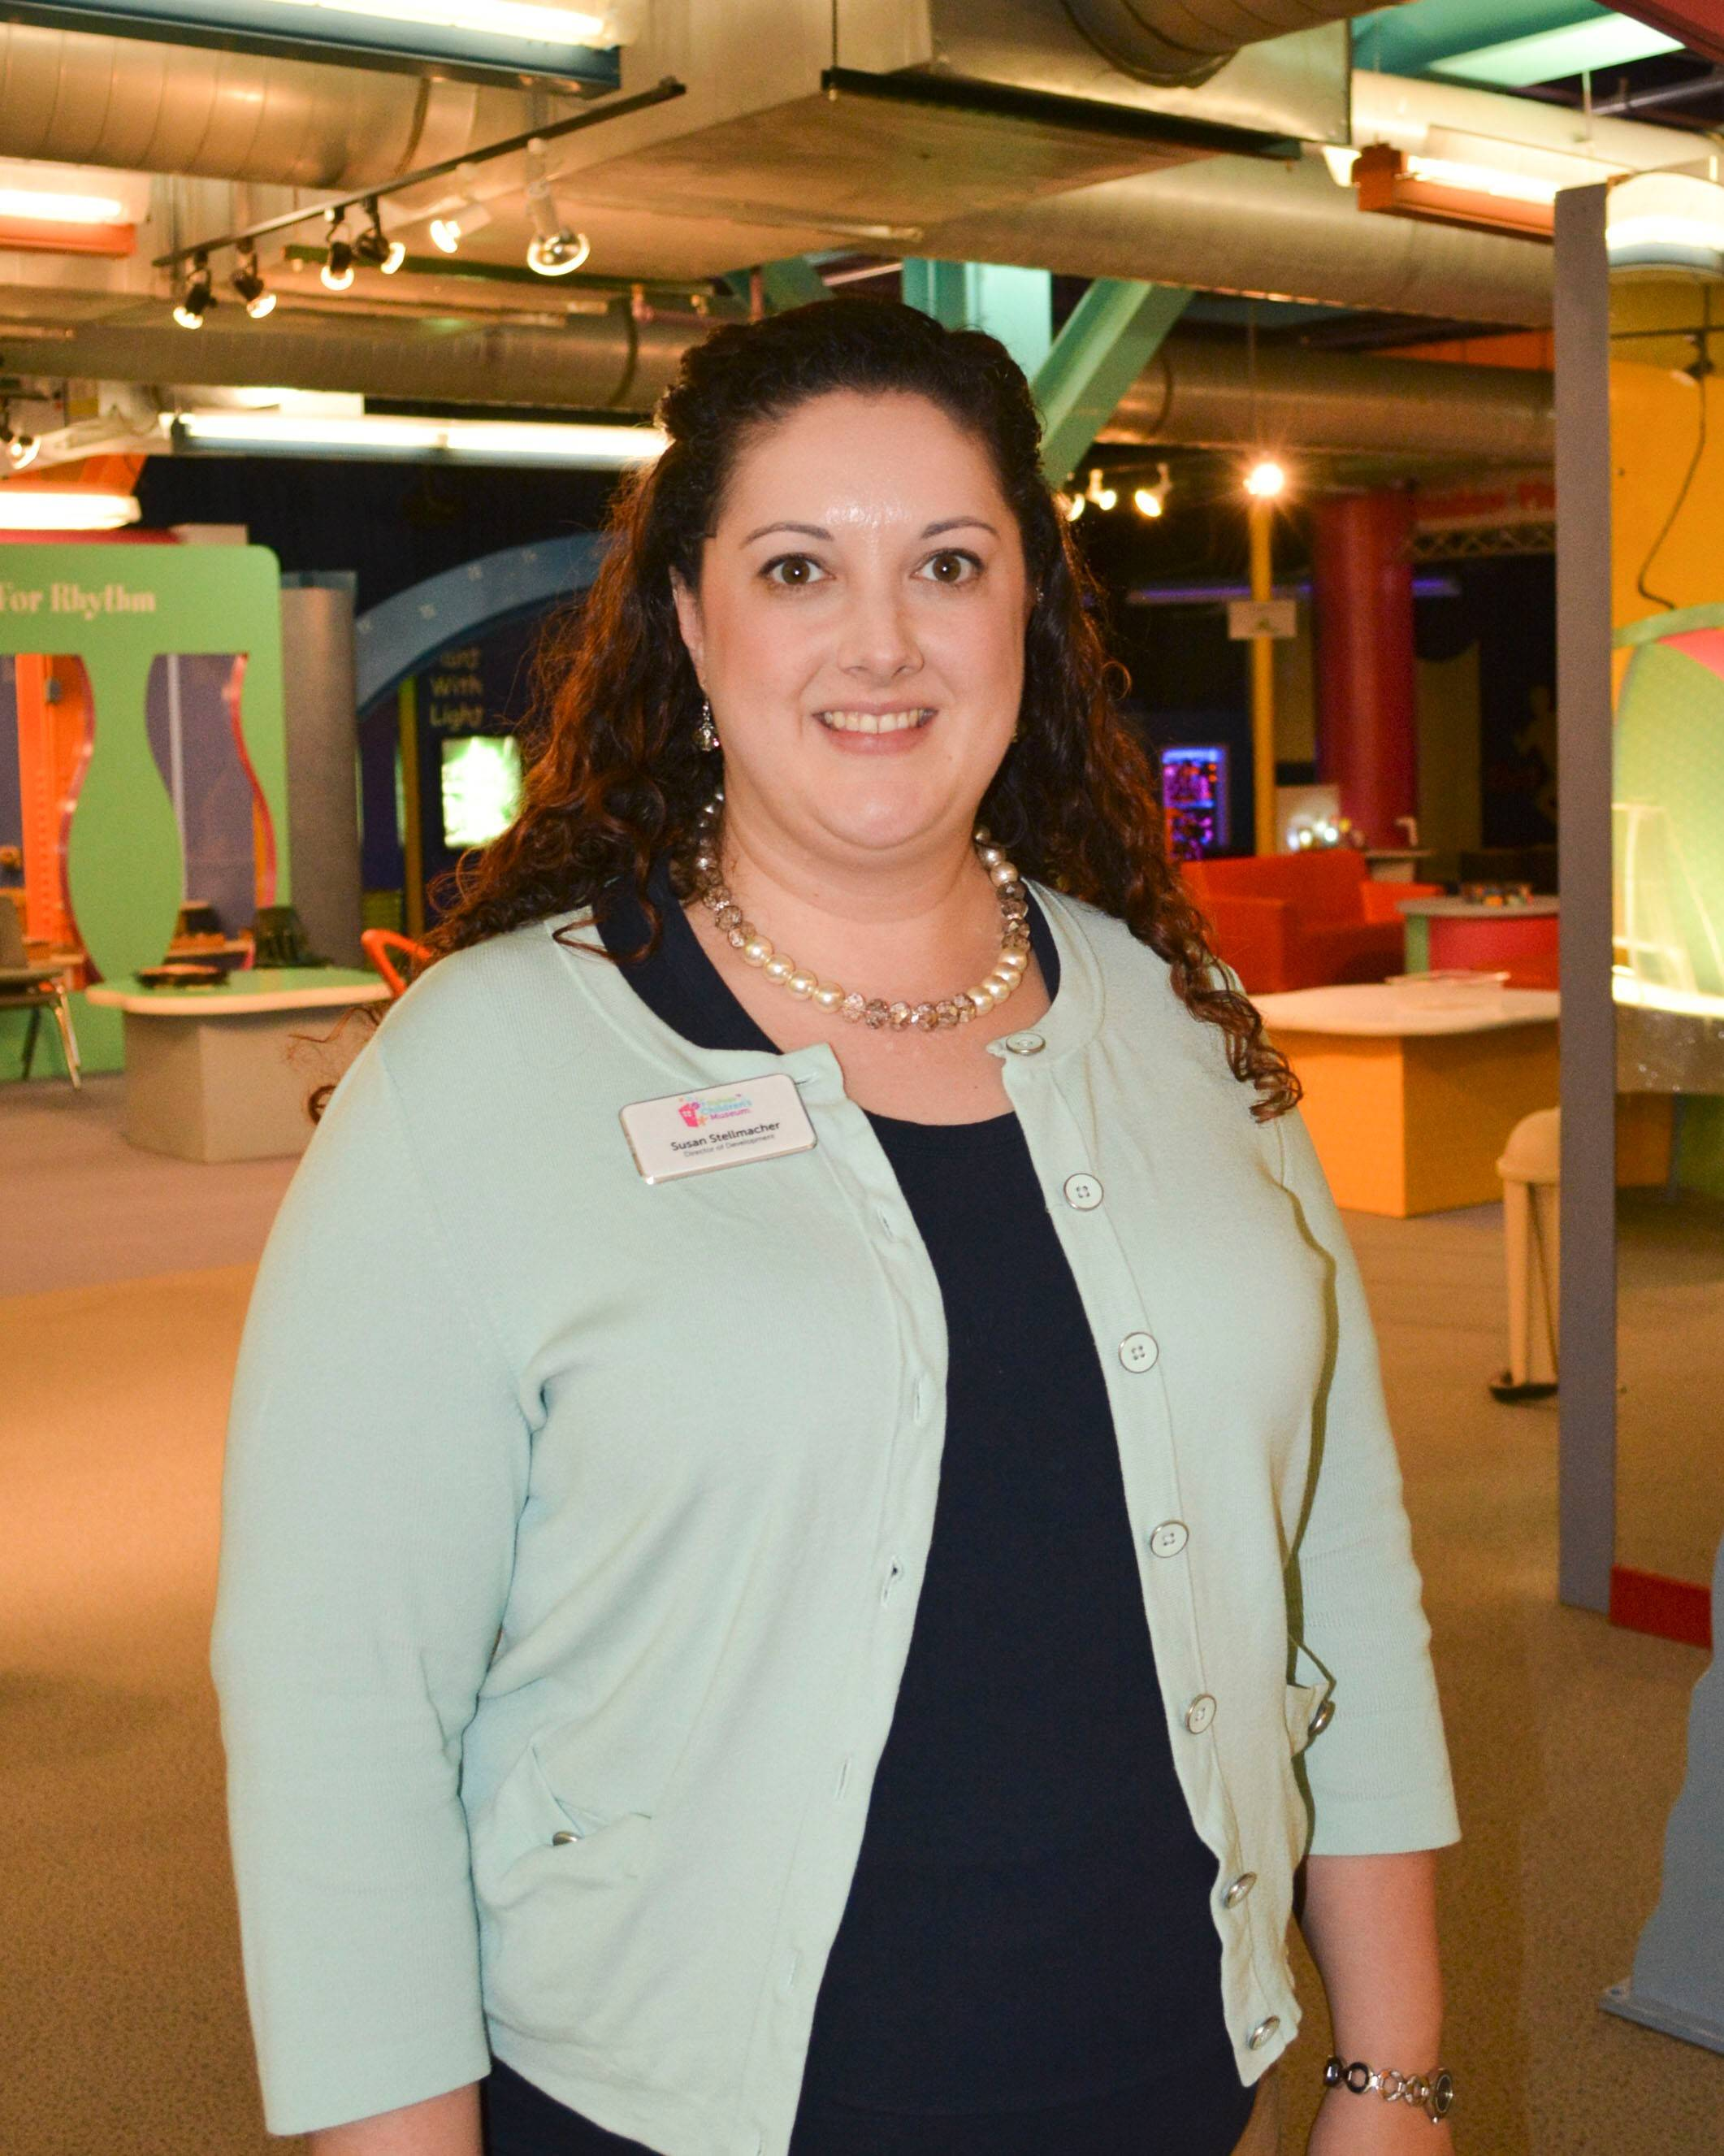 Susan Stellmacher has been named director of development for the Naperville-based DuPage Children's Museum.